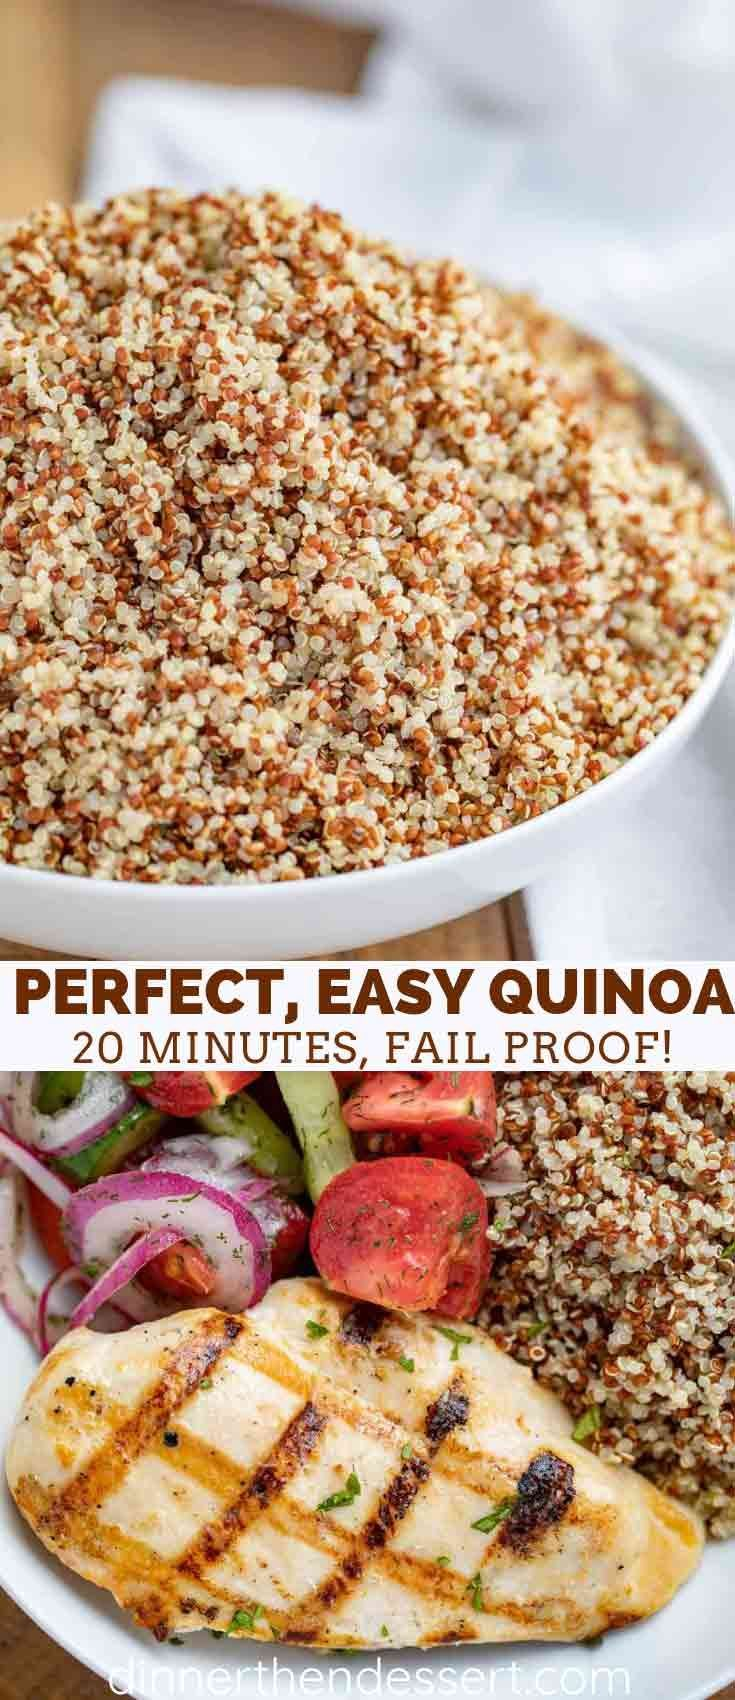 Side Dish How to Cook Quinoa the perfect easy way that will never fail you be bitter or over cook This is the classic healthy glutenfree side dish&nbs...